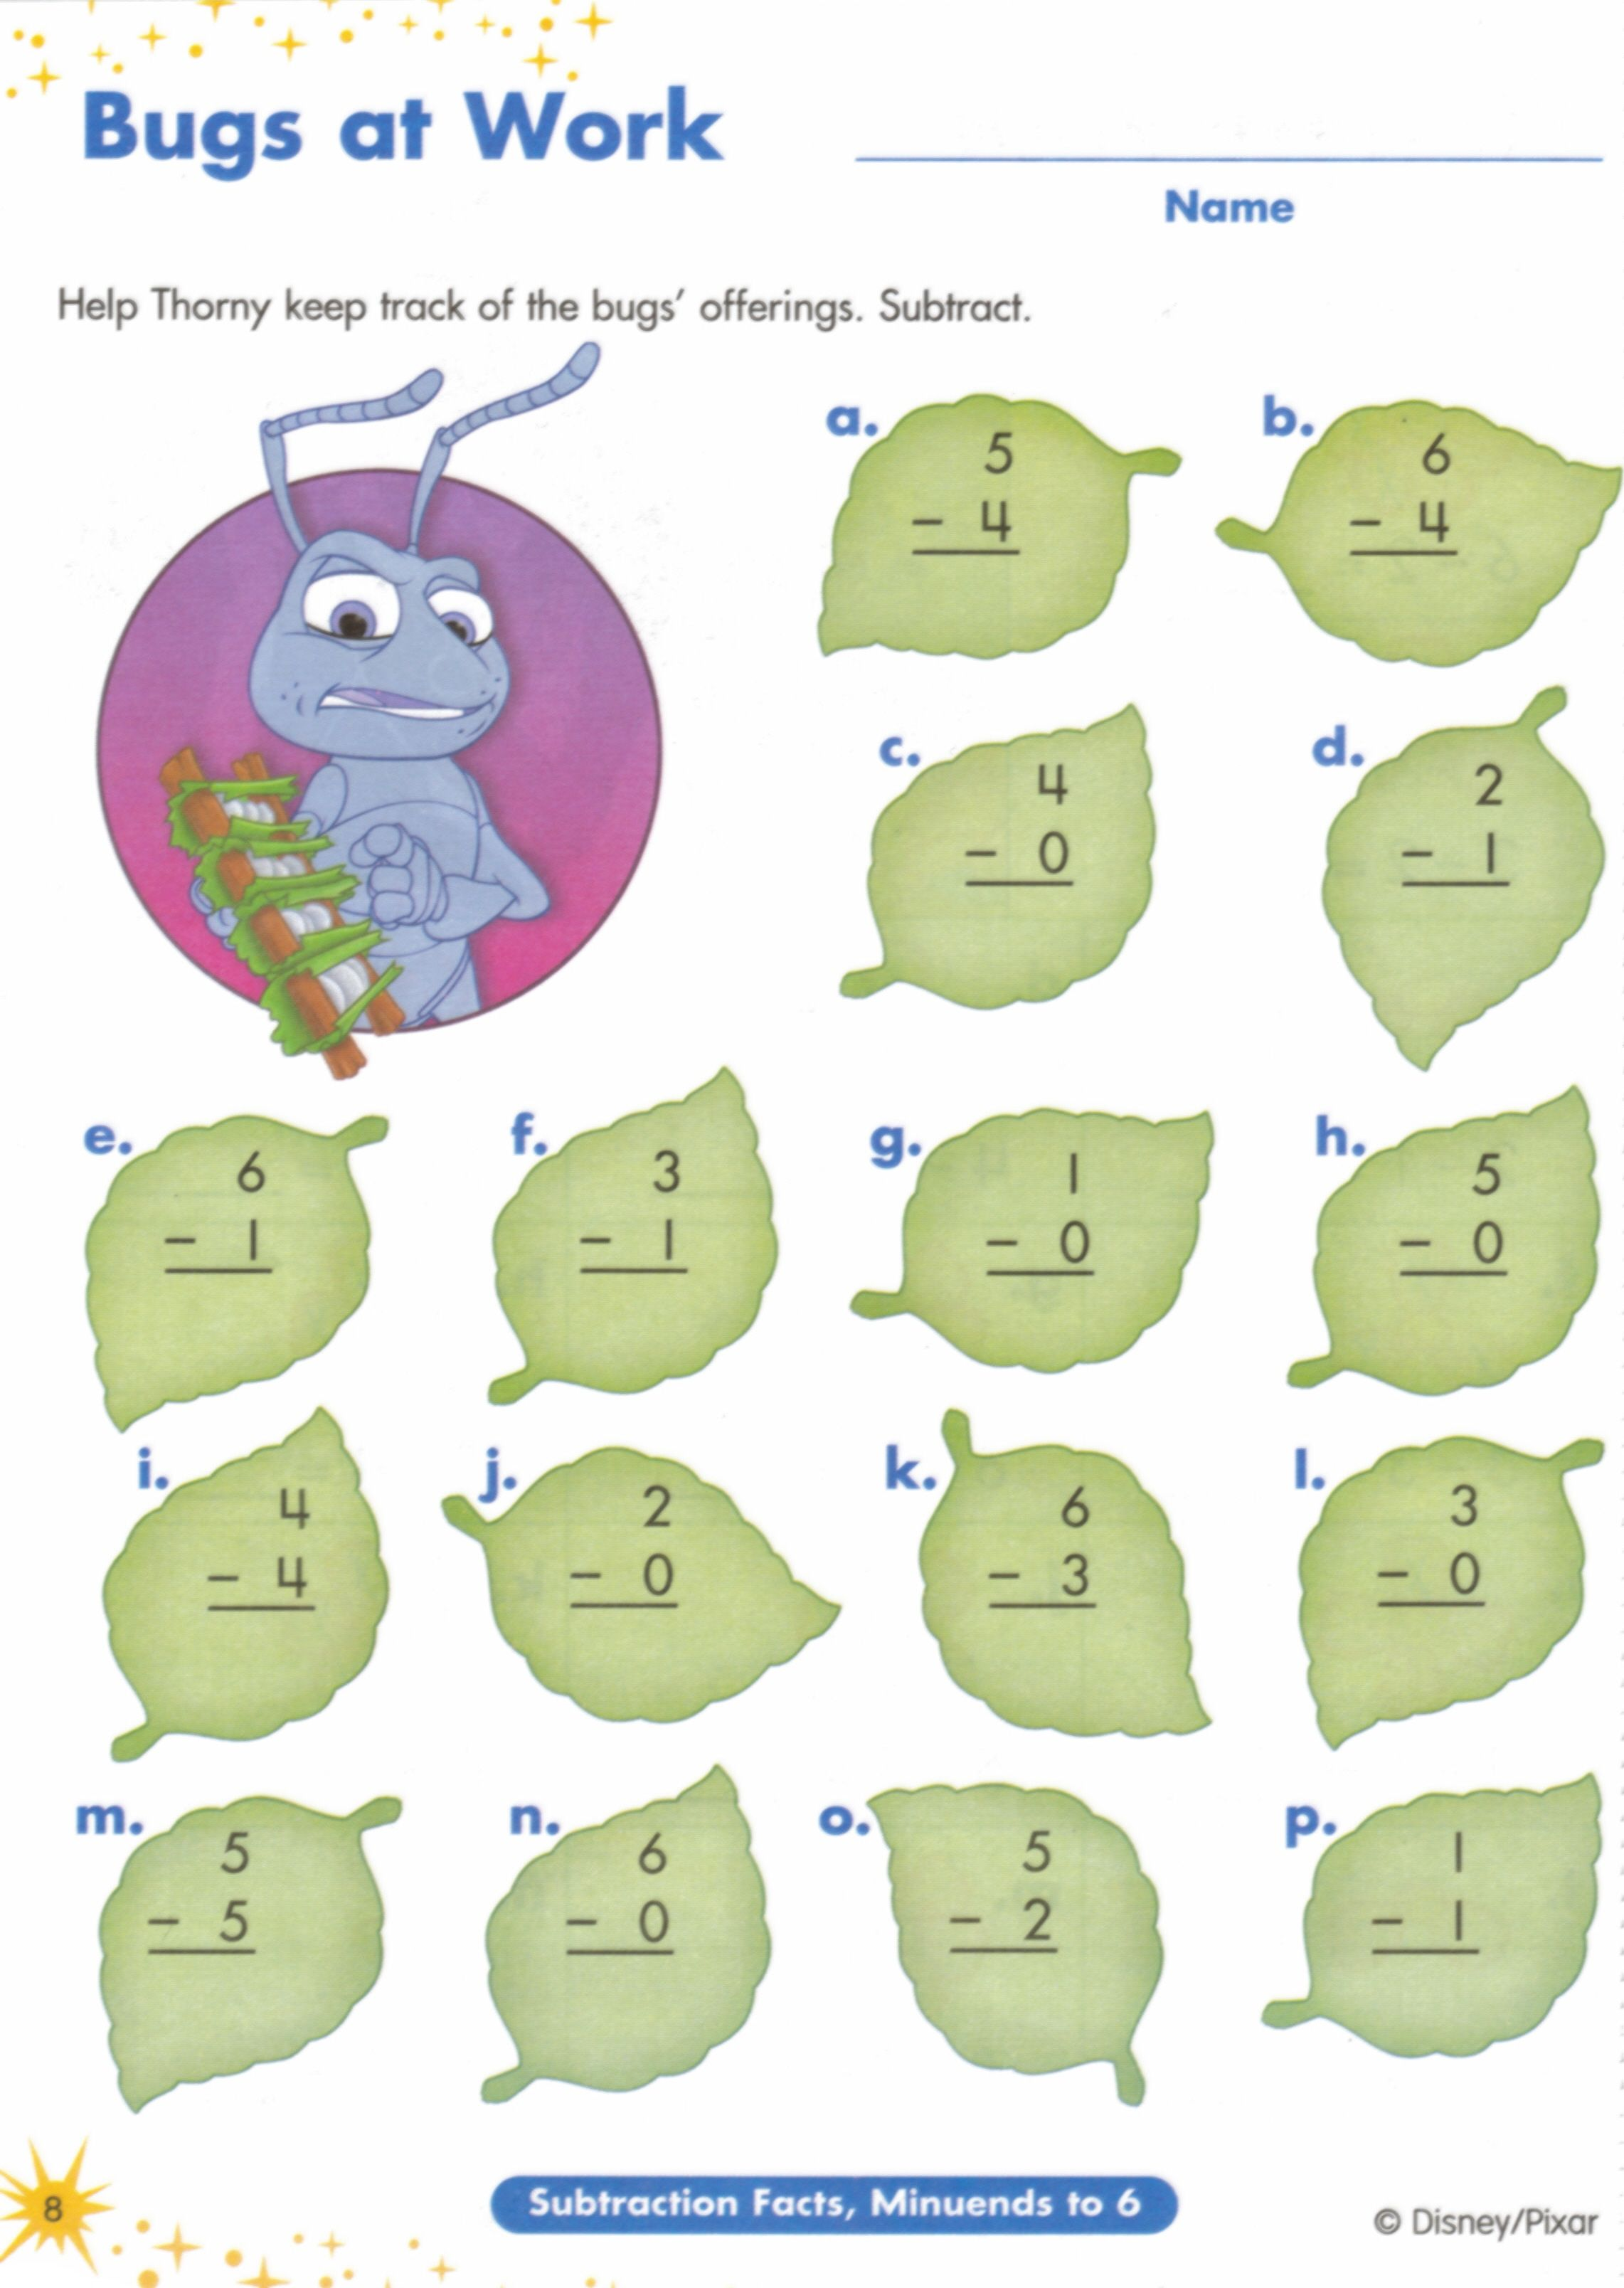 Proatmealus  Remarkable  Images About Worksheets On Pinterest  Fun Facts For Kids  With Excellent  Images About Worksheets On Pinterest  Fun Facts For Kids Earth Day Worksheets And Jungles With Delightful Plot Points Worksheet Also Sea Turtle Life Cycle Worksheet In Addition Observation Versus Inference Worksheet And Mad Math Worksheets As Well As Addition Worksheets Kindergarten Free Additionally Worksheets On Simple Machines From Pinterestcom With Proatmealus  Excellent  Images About Worksheets On Pinterest  Fun Facts For Kids  With Delightful  Images About Worksheets On Pinterest  Fun Facts For Kids Earth Day Worksheets And Jungles And Remarkable Plot Points Worksheet Also Sea Turtle Life Cycle Worksheet In Addition Observation Versus Inference Worksheet From Pinterestcom